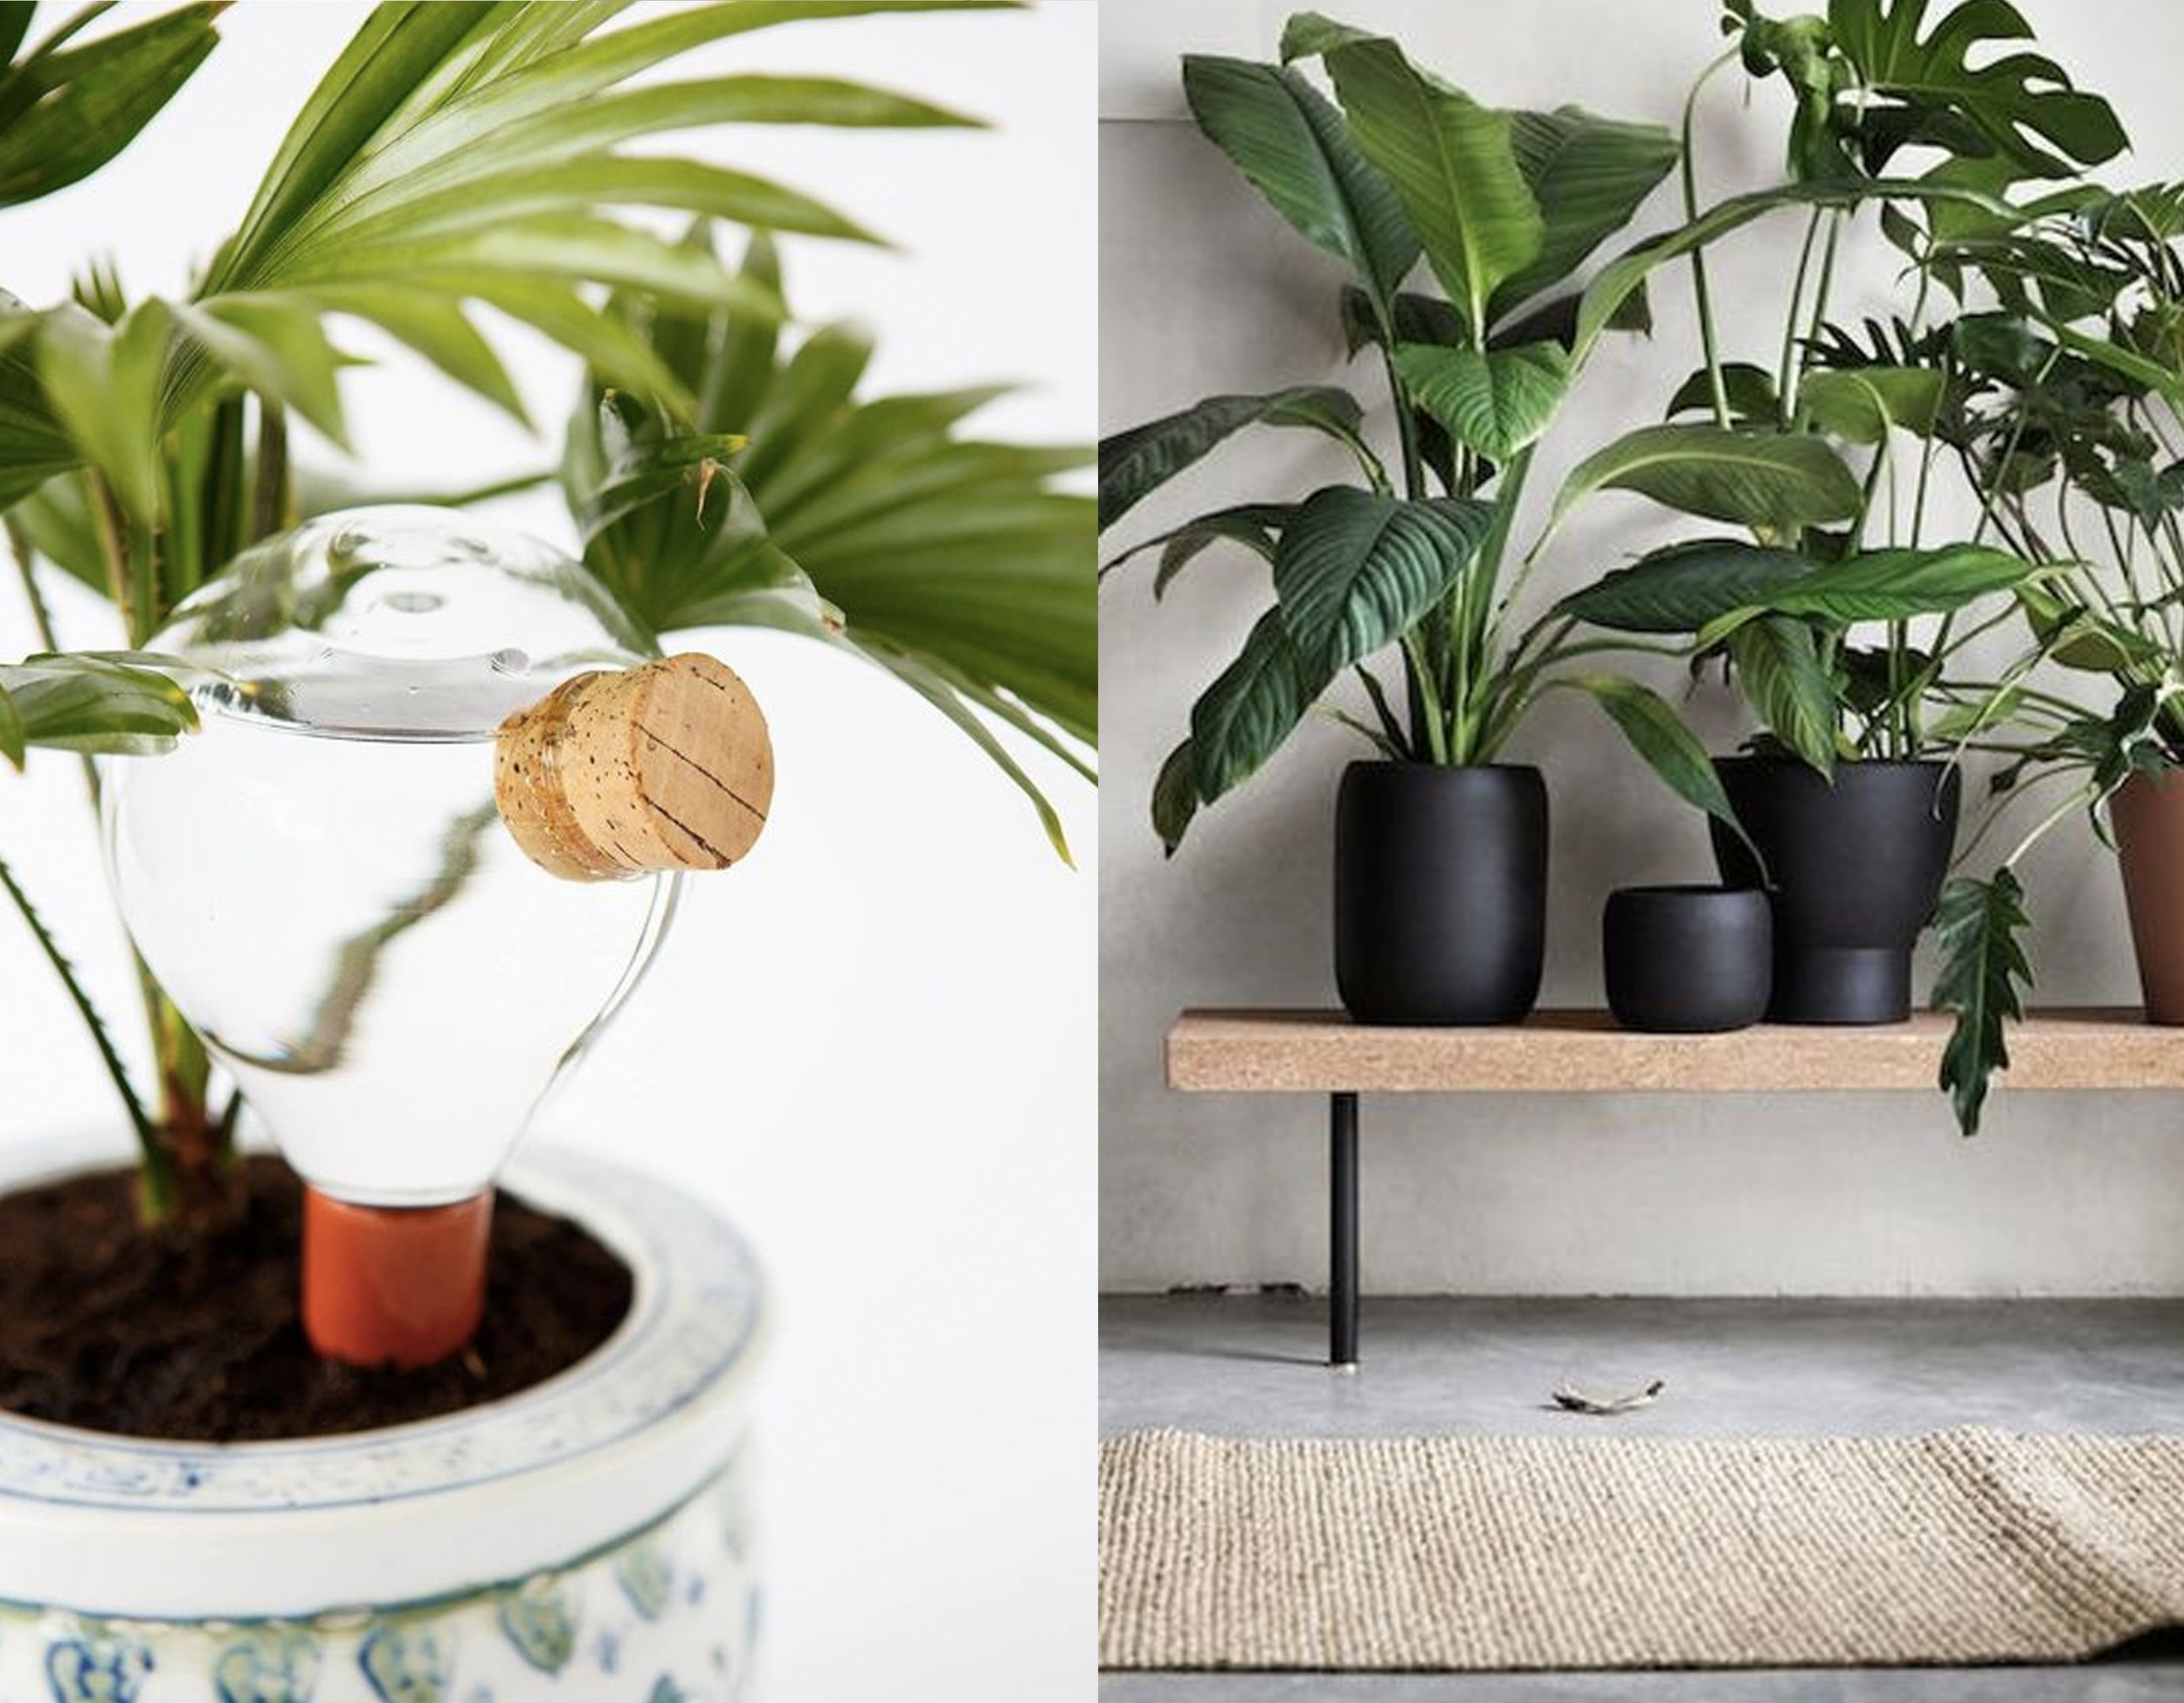 plant watering system with cork via  Crowdyhouse  - Sinnerlig bench by Isle Crawford via  Voges Paris